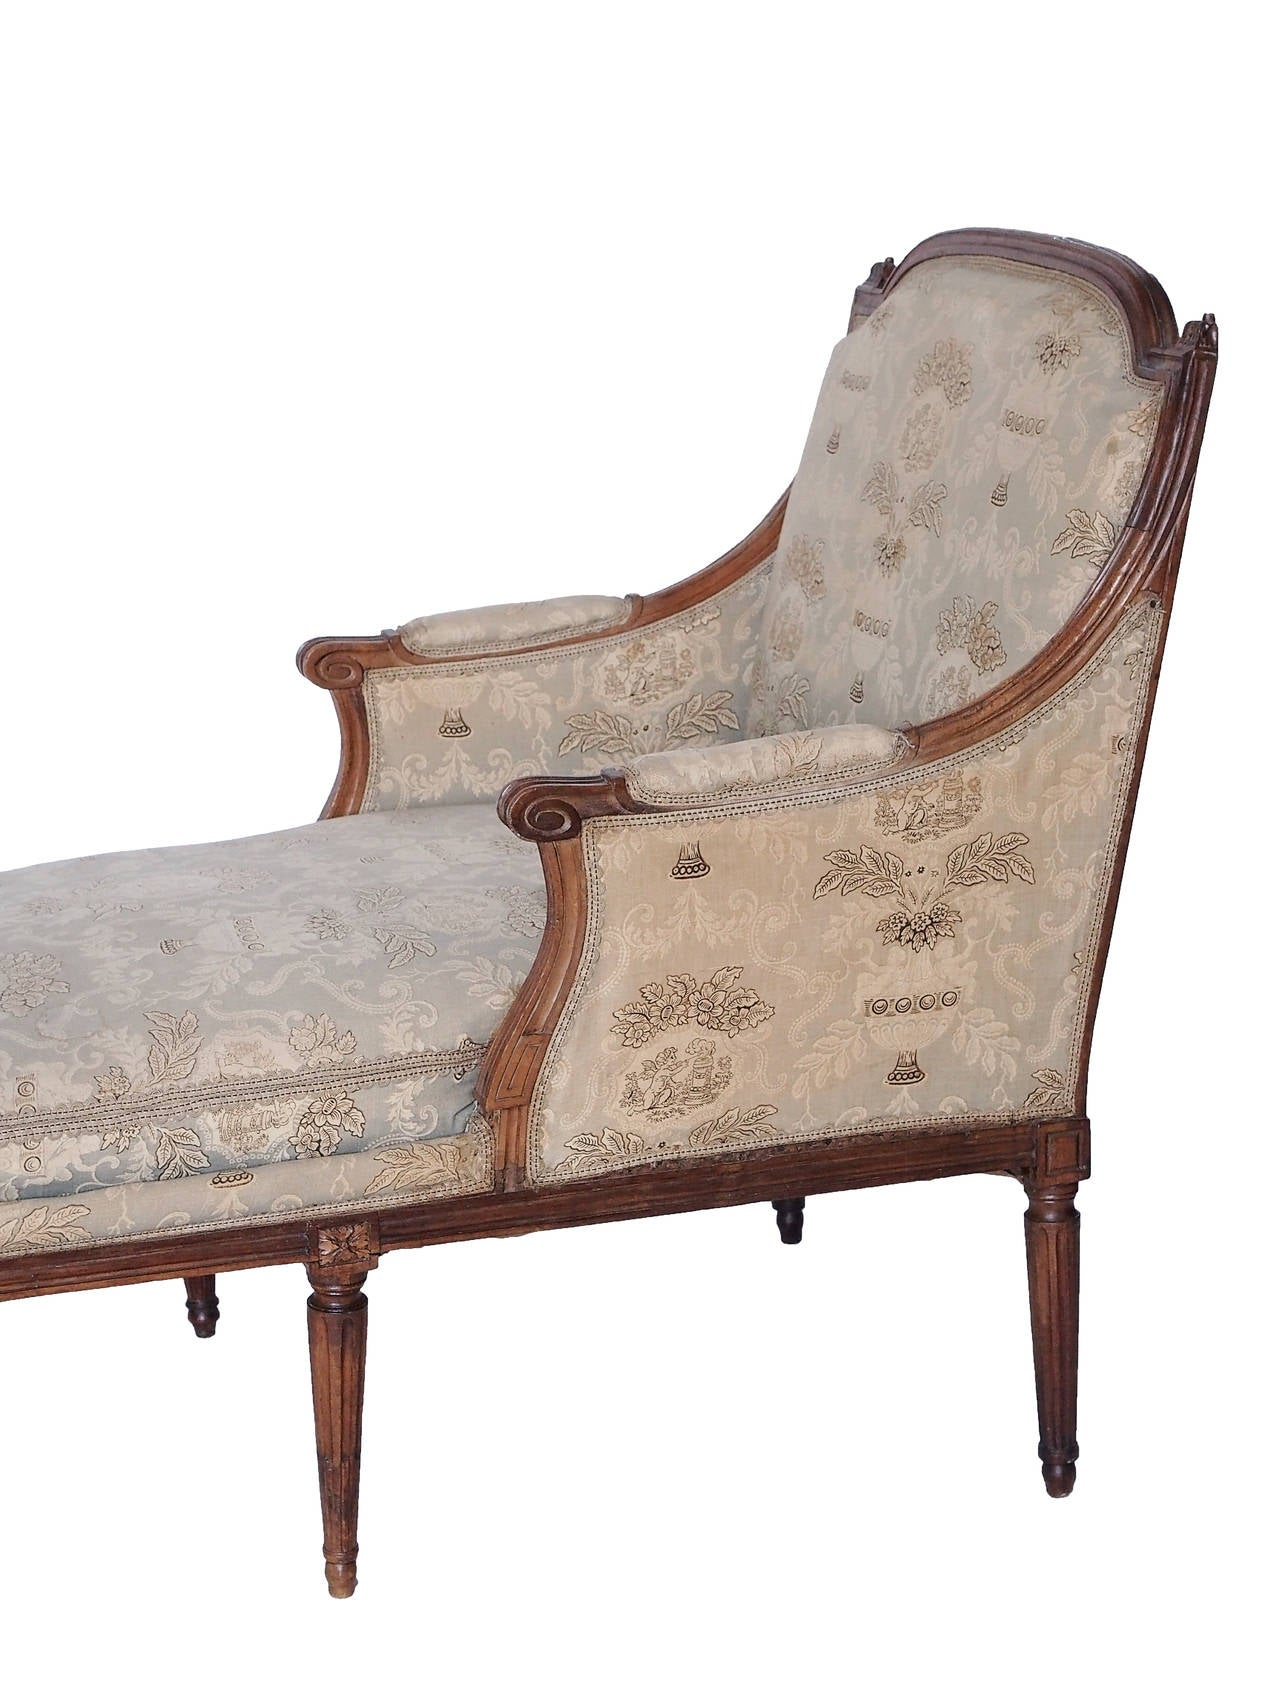 18th 19th century french louis xvi chaise with toile - Changer toile chaise longue ...